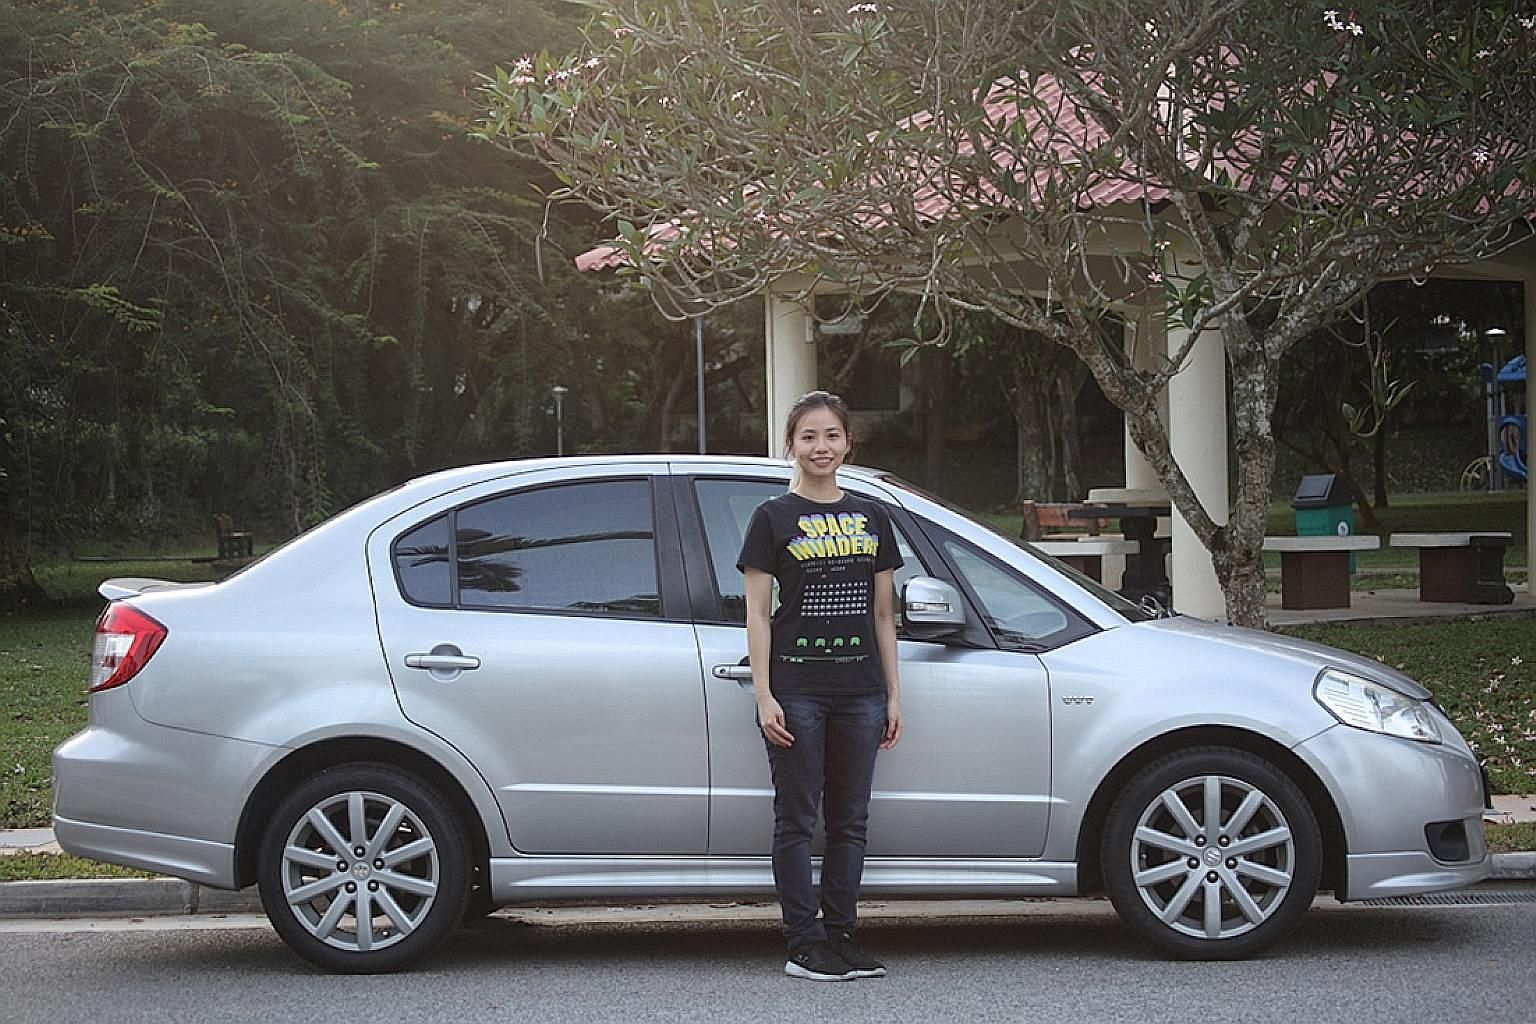 Despite her affinity for sophisticated technology, inventor-entrepreneur Olivia Seow Wen prefers a simple ride such as the Suzuki SX4.